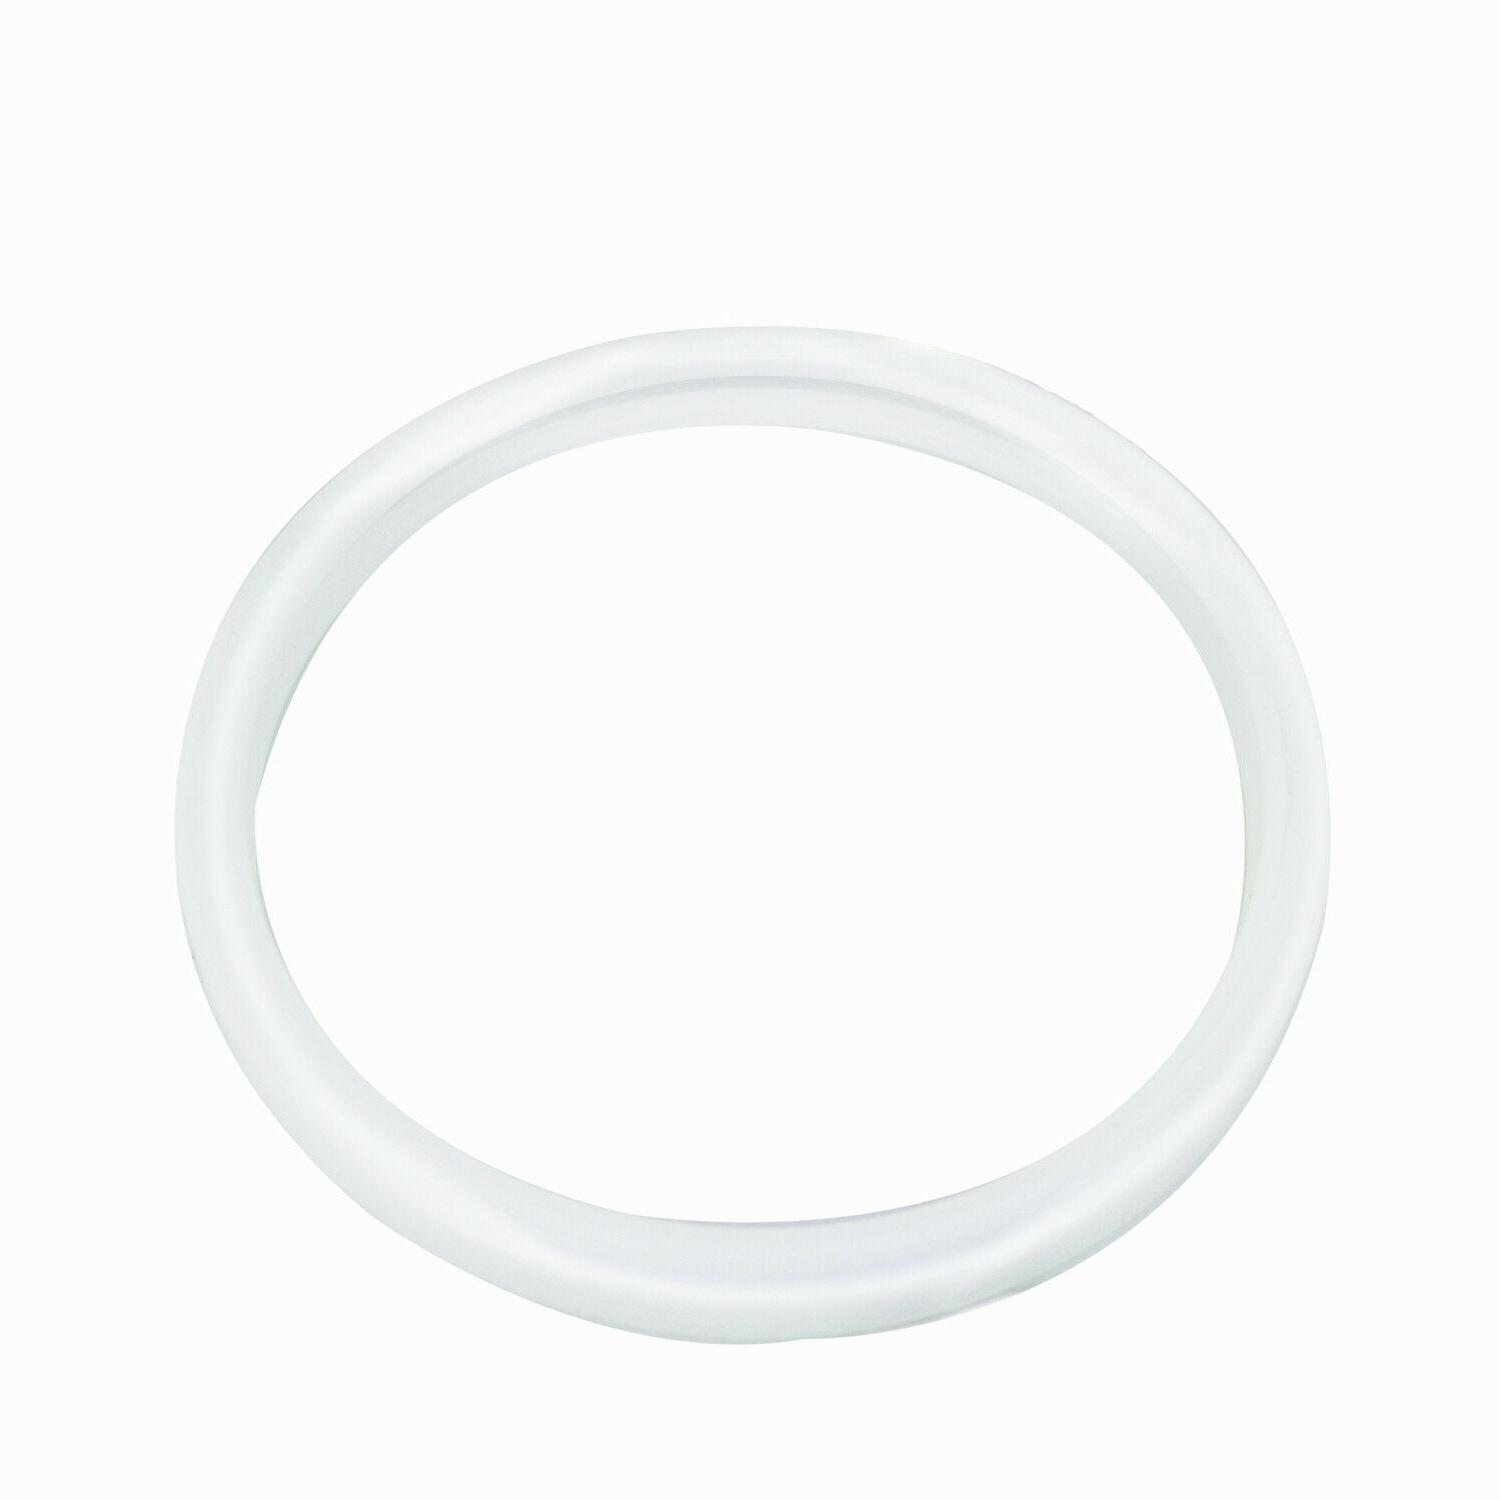 8 pool light gasket replacement for pentair